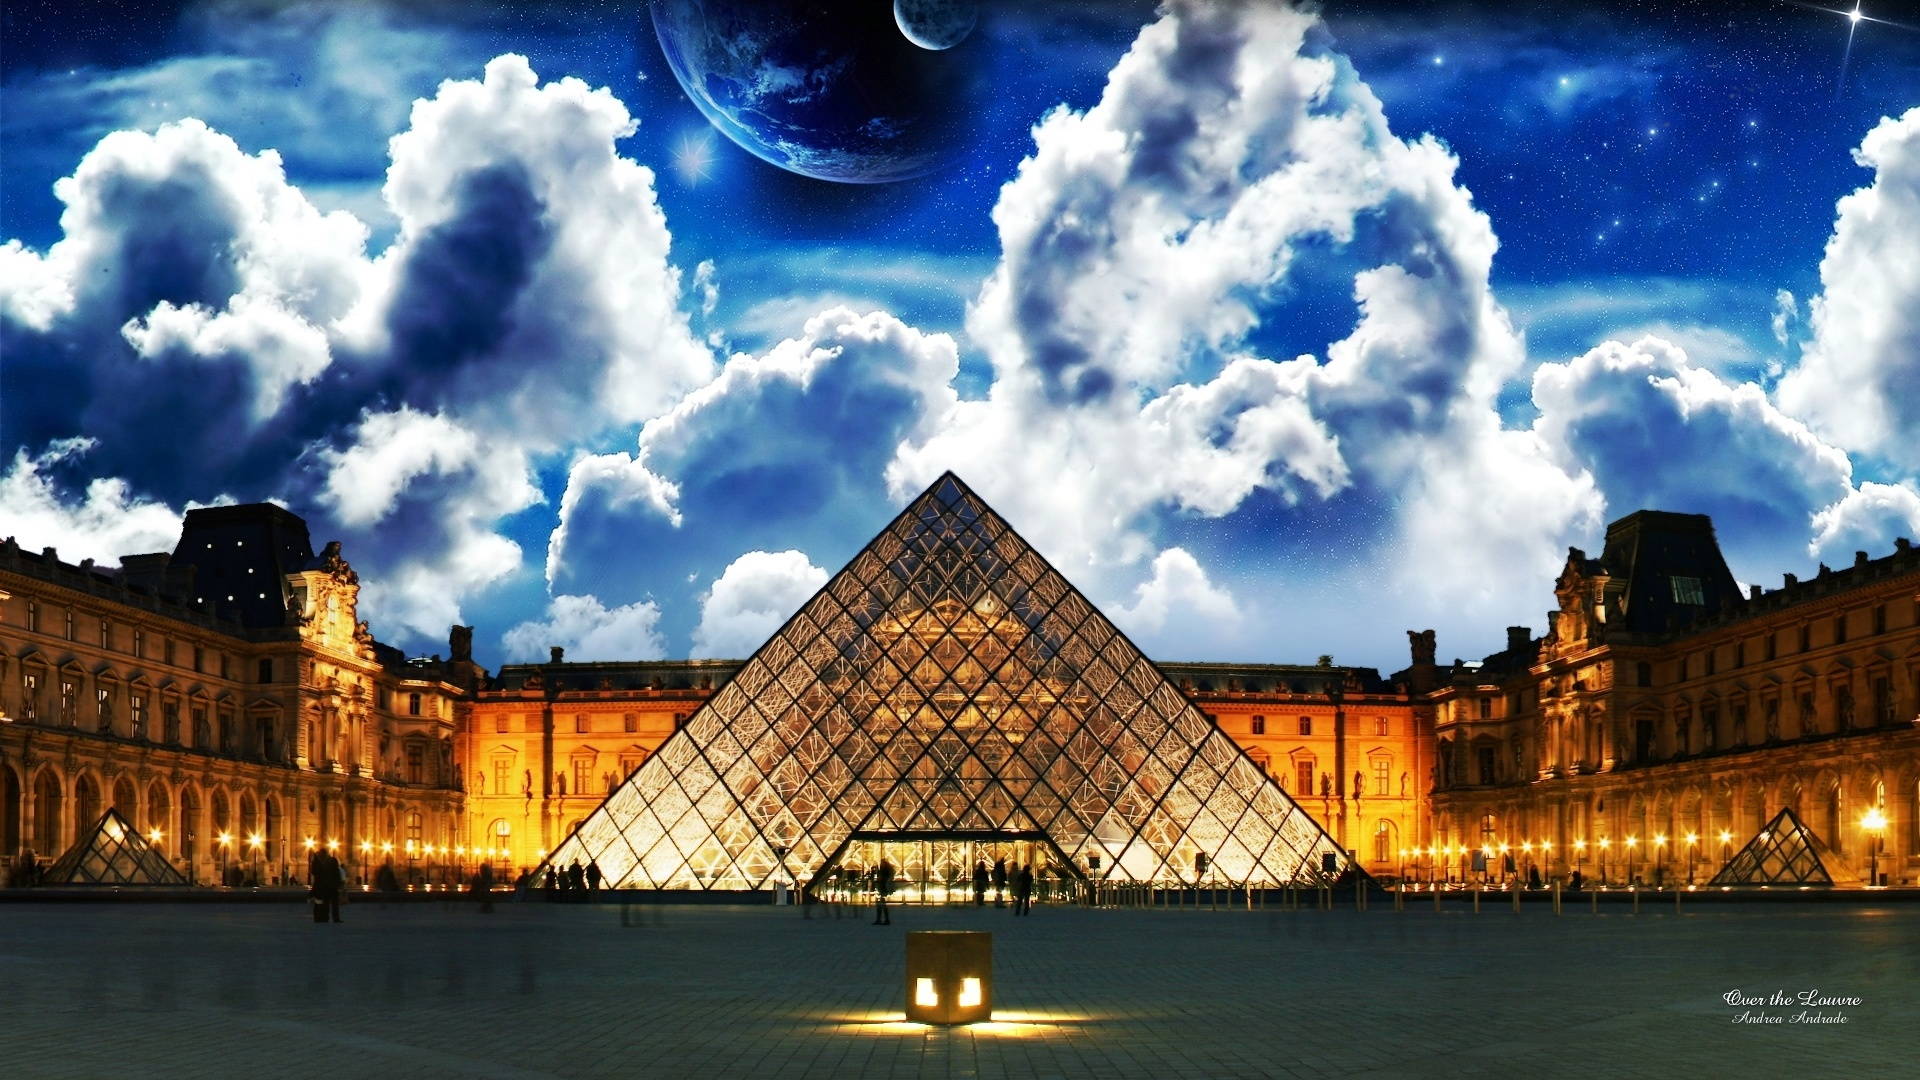 Louvre Museum free image